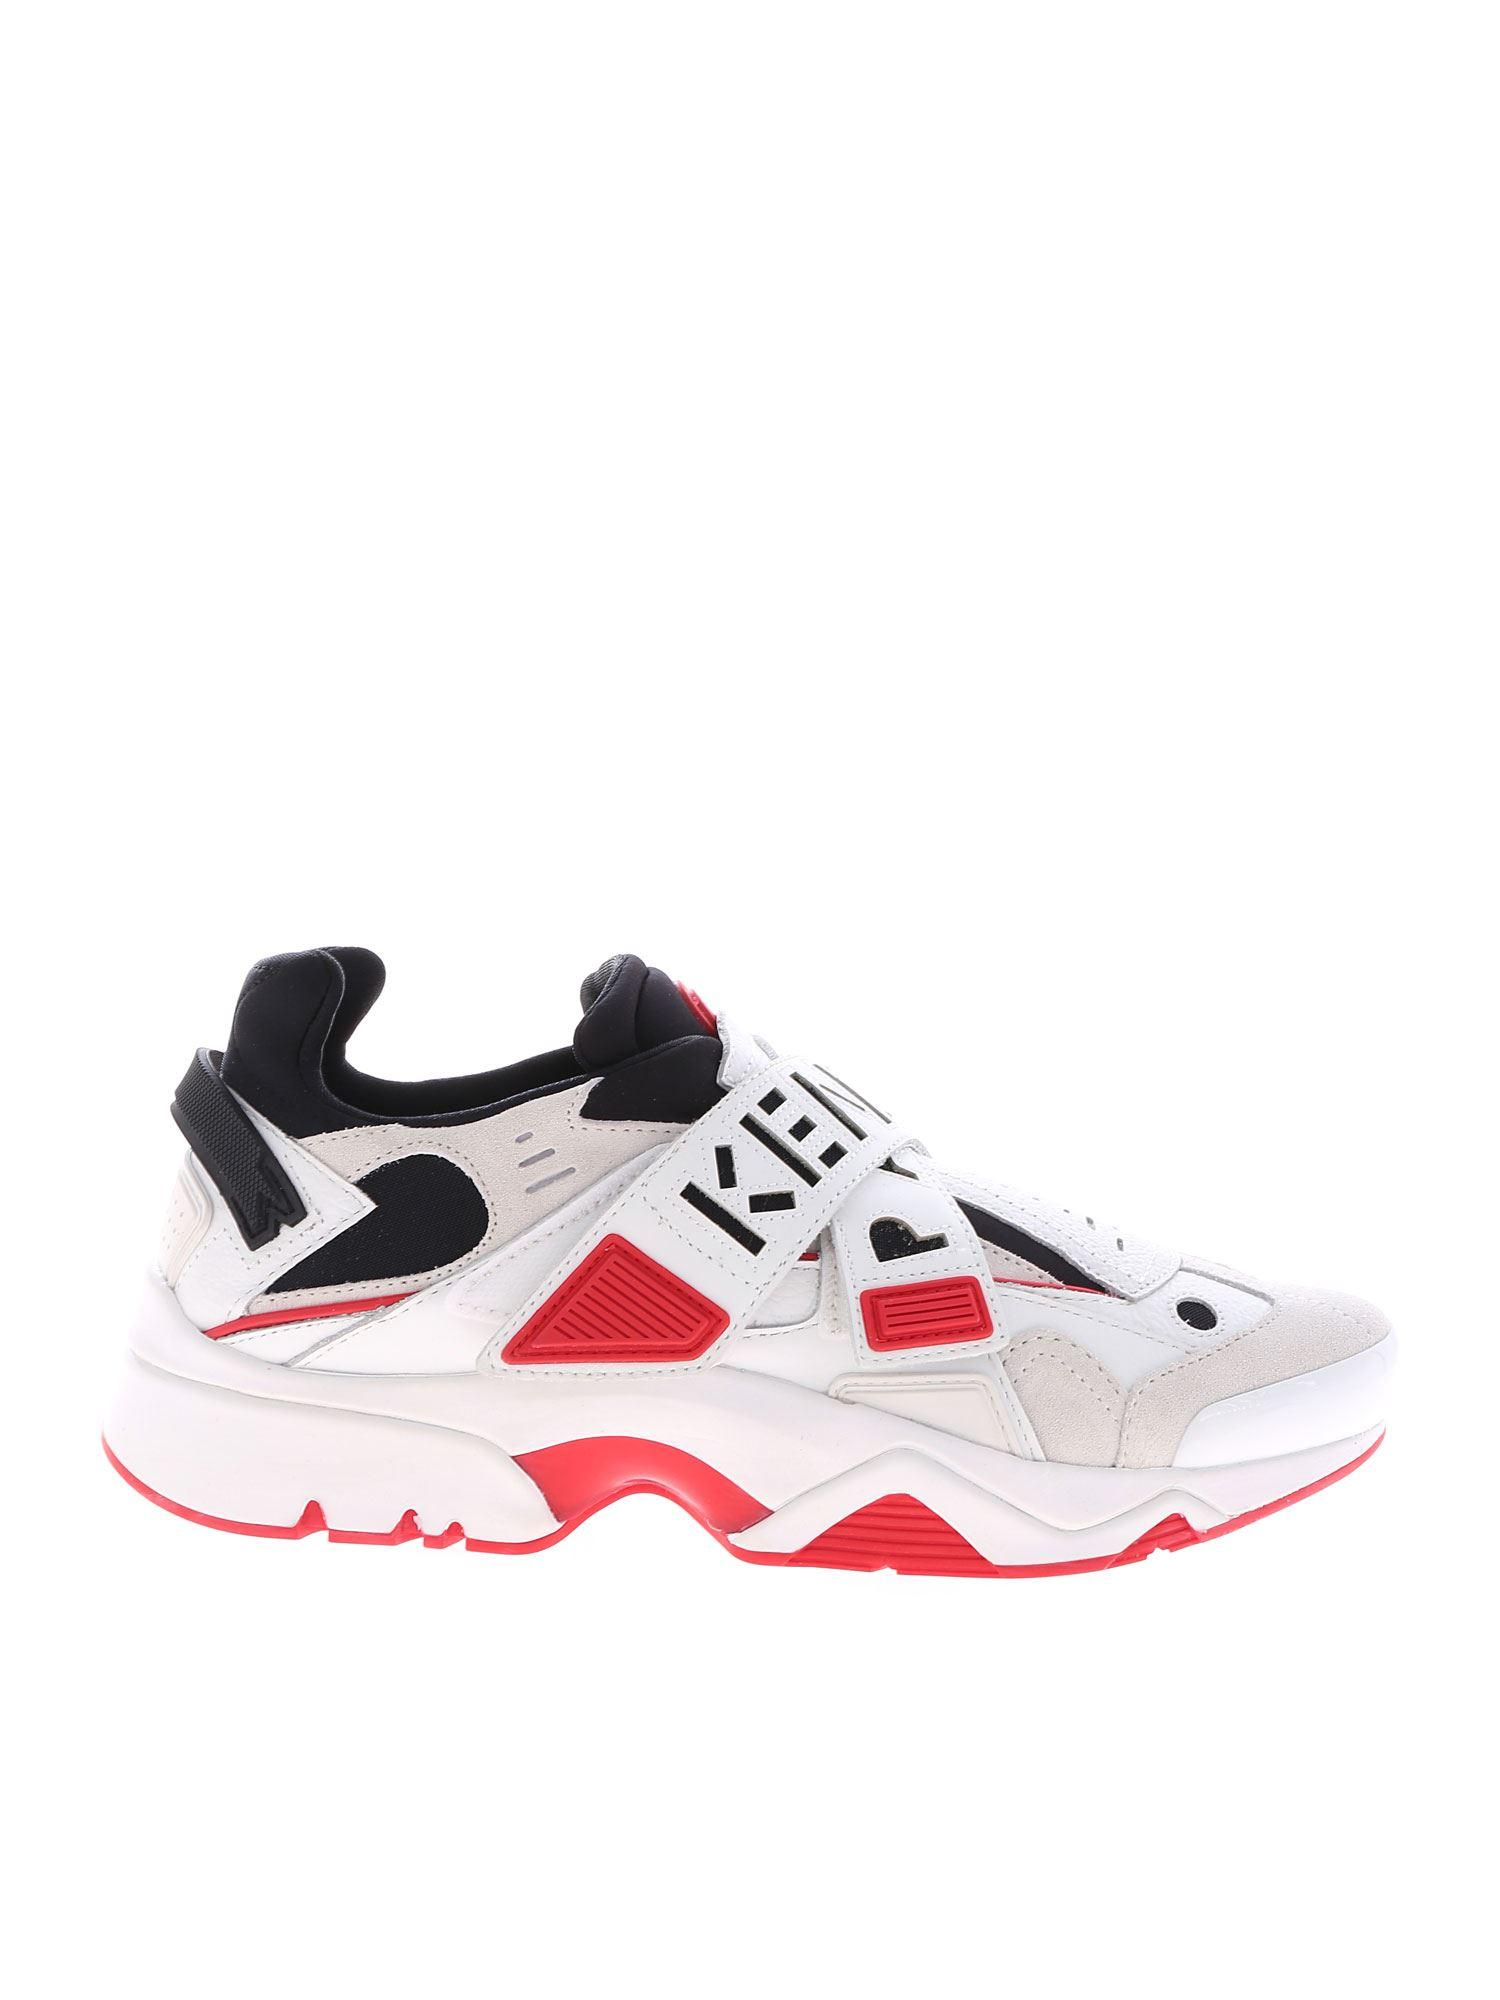 Kenzo Sonic Velcro Sneakers In White And Red In White For